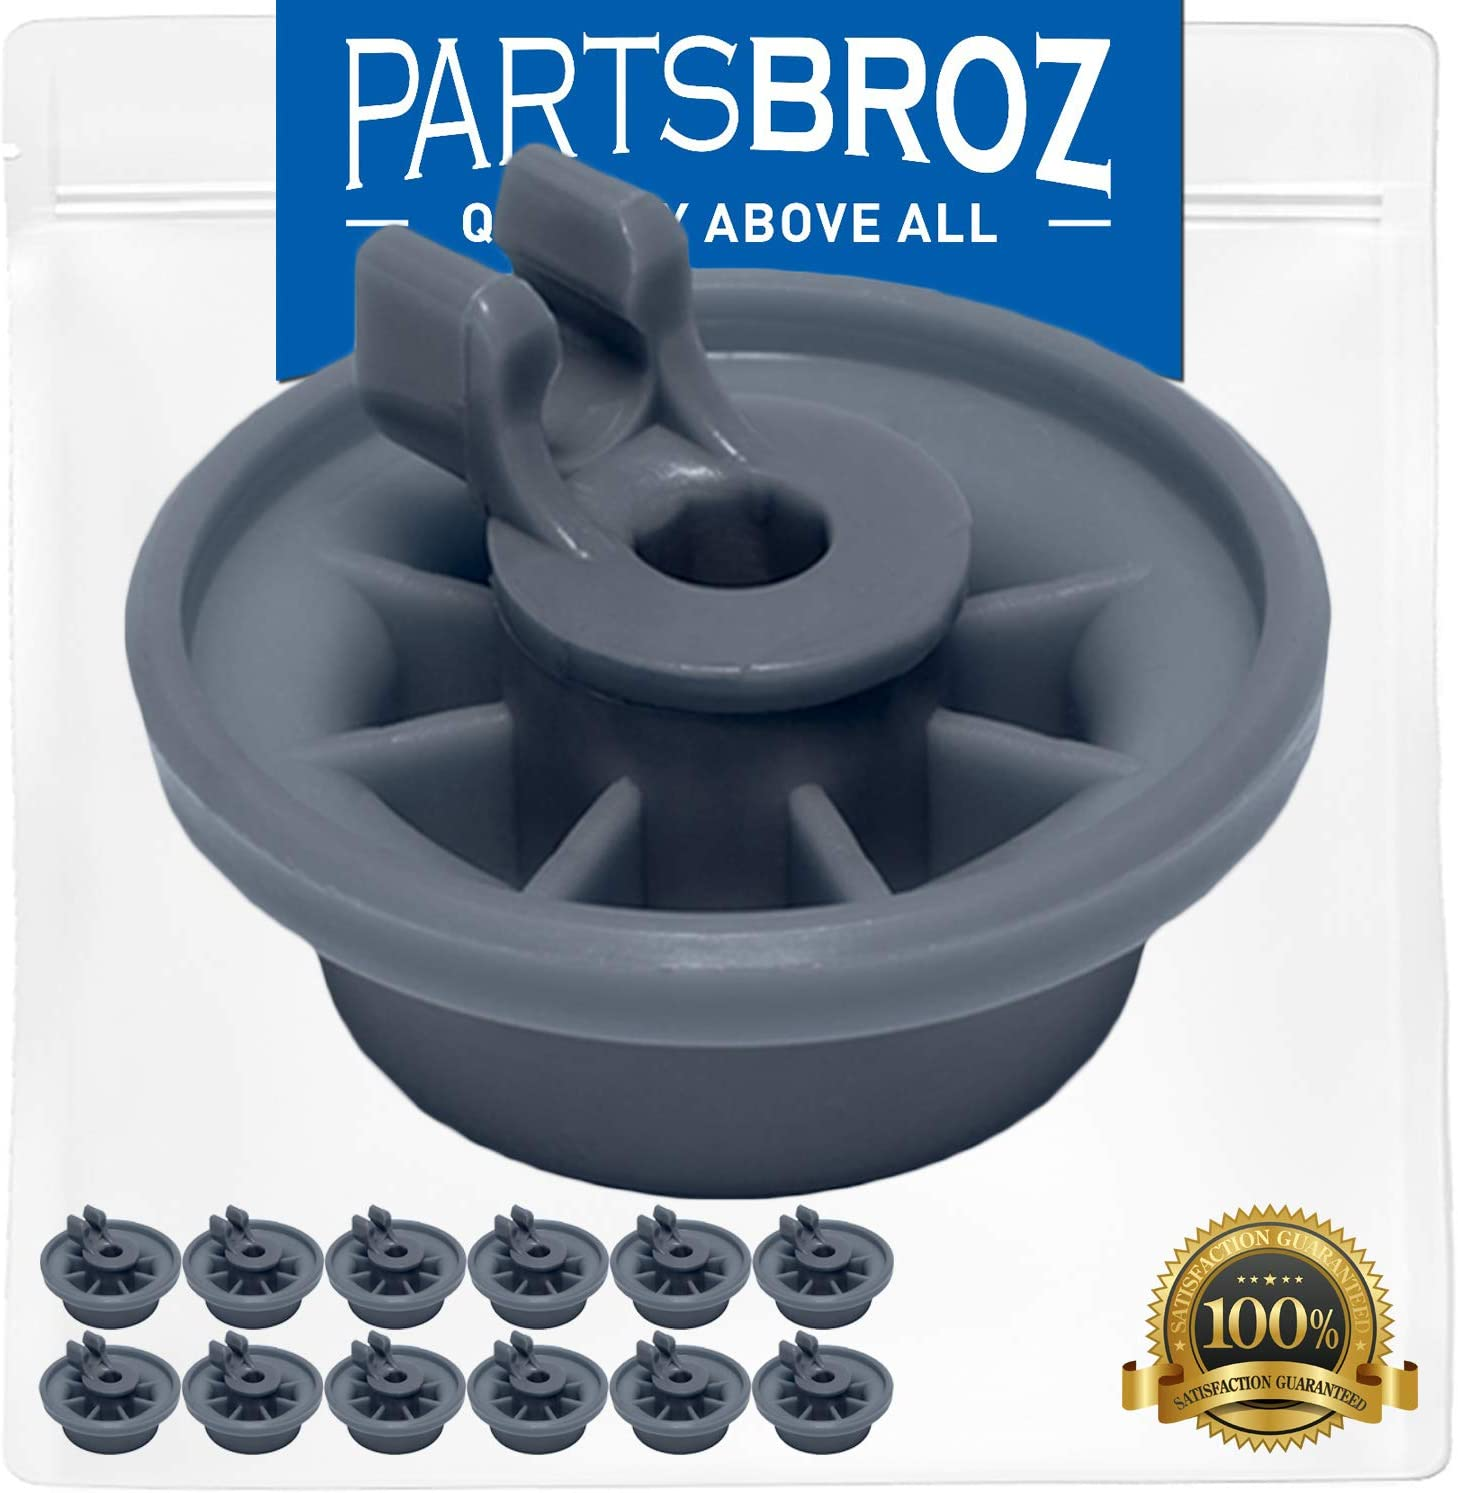 165314 Dishrack Roller (12-Pack) by PartsBroz - Compatible with Bosch Dishwashers - Replaces AP2802428, 00420198, 165314, 420198, 423232, AH3439123, EA3439123, PS3439123, PS8697067